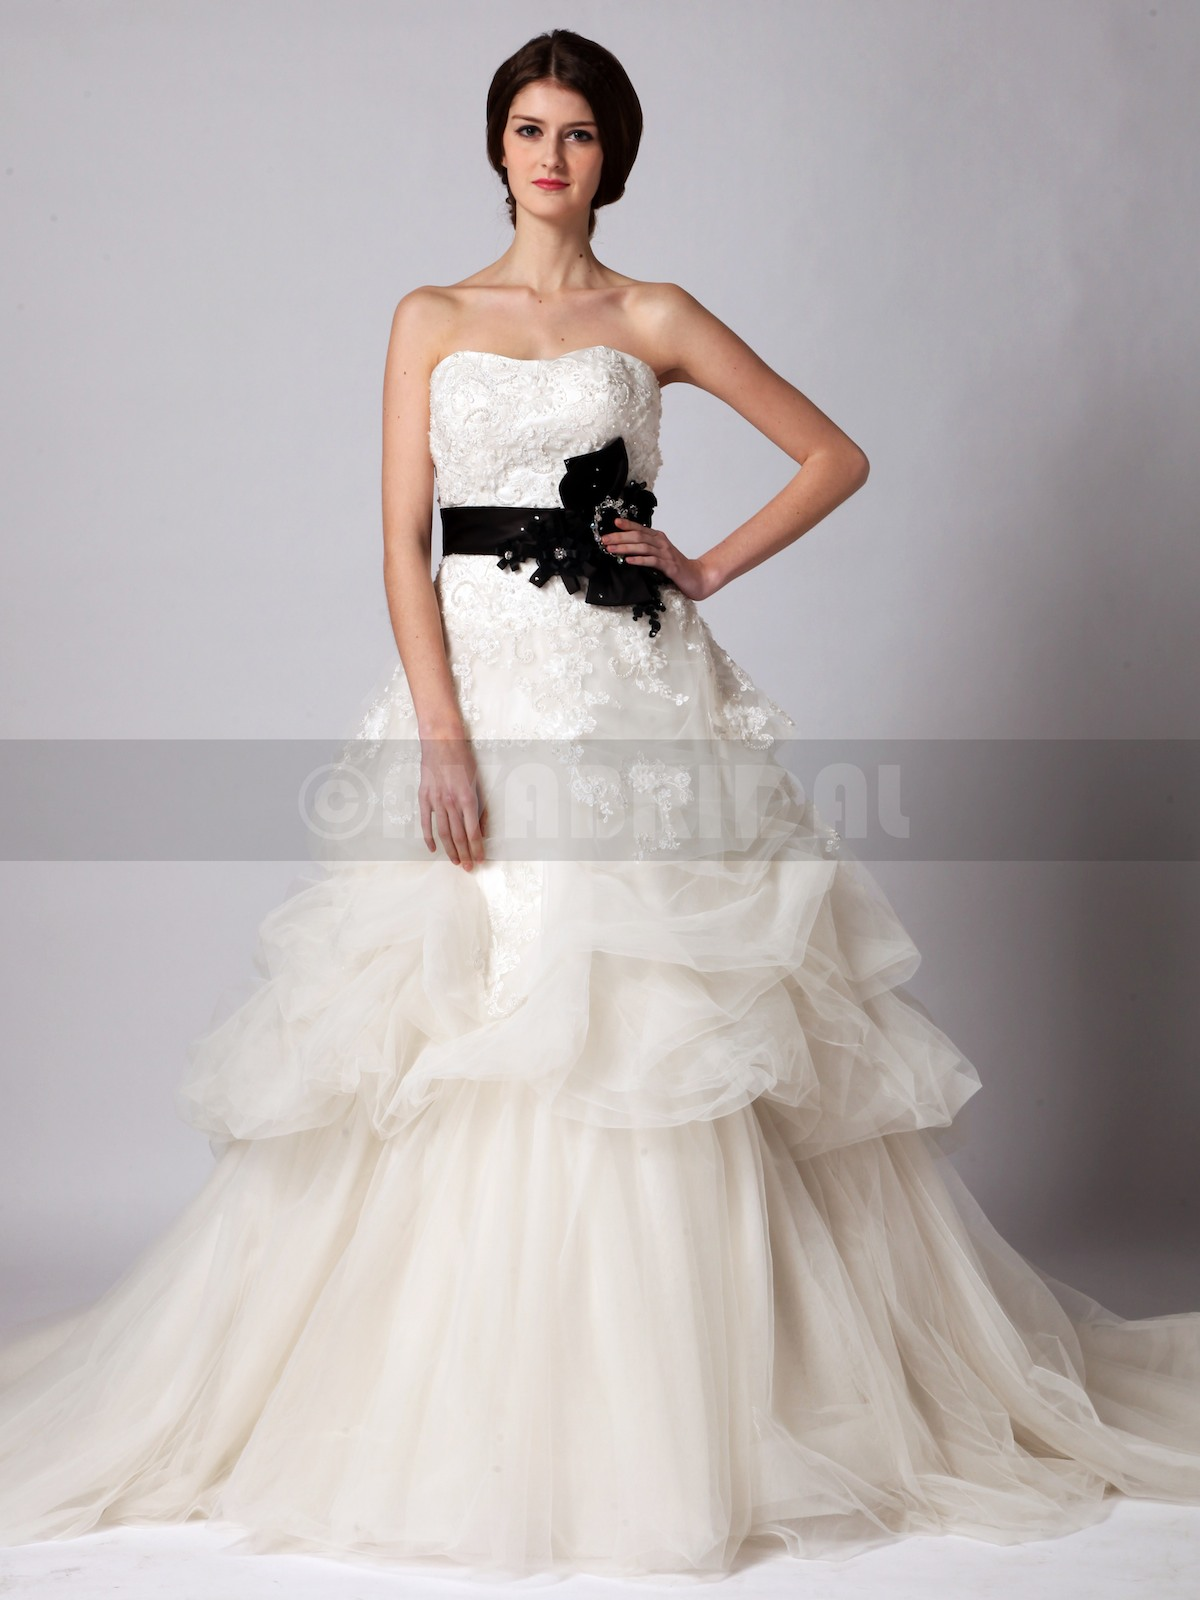 Alternative Wedding Dress - Kathrine - Front